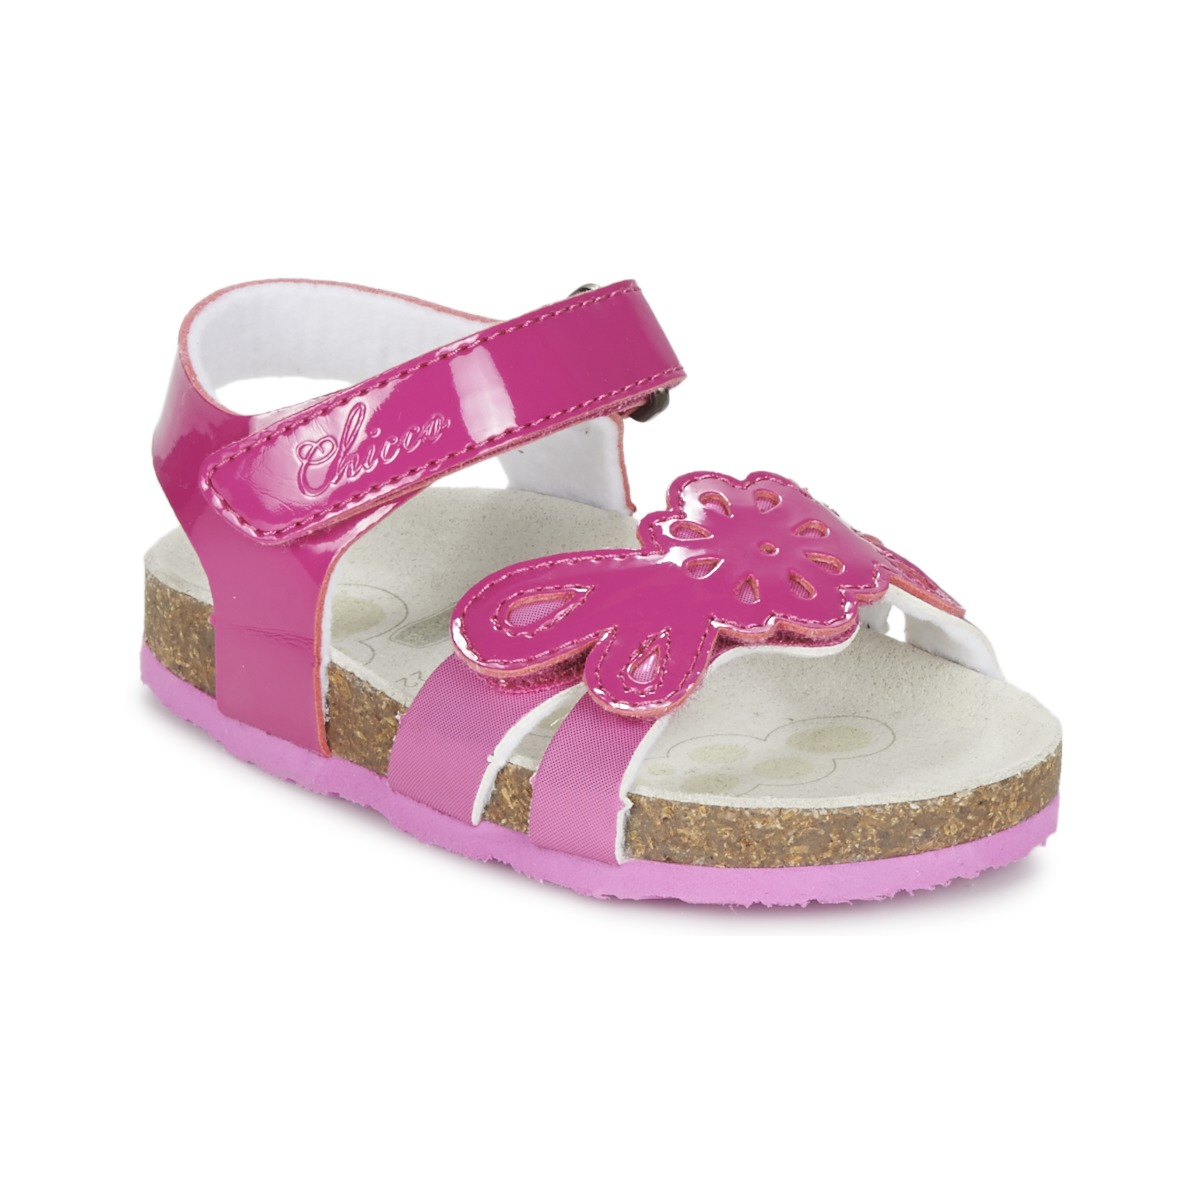 Chicco HAMALIA Pink - Fast delivery with Spartoo Europe ! - Shoes Sandals  Child 39,92 €